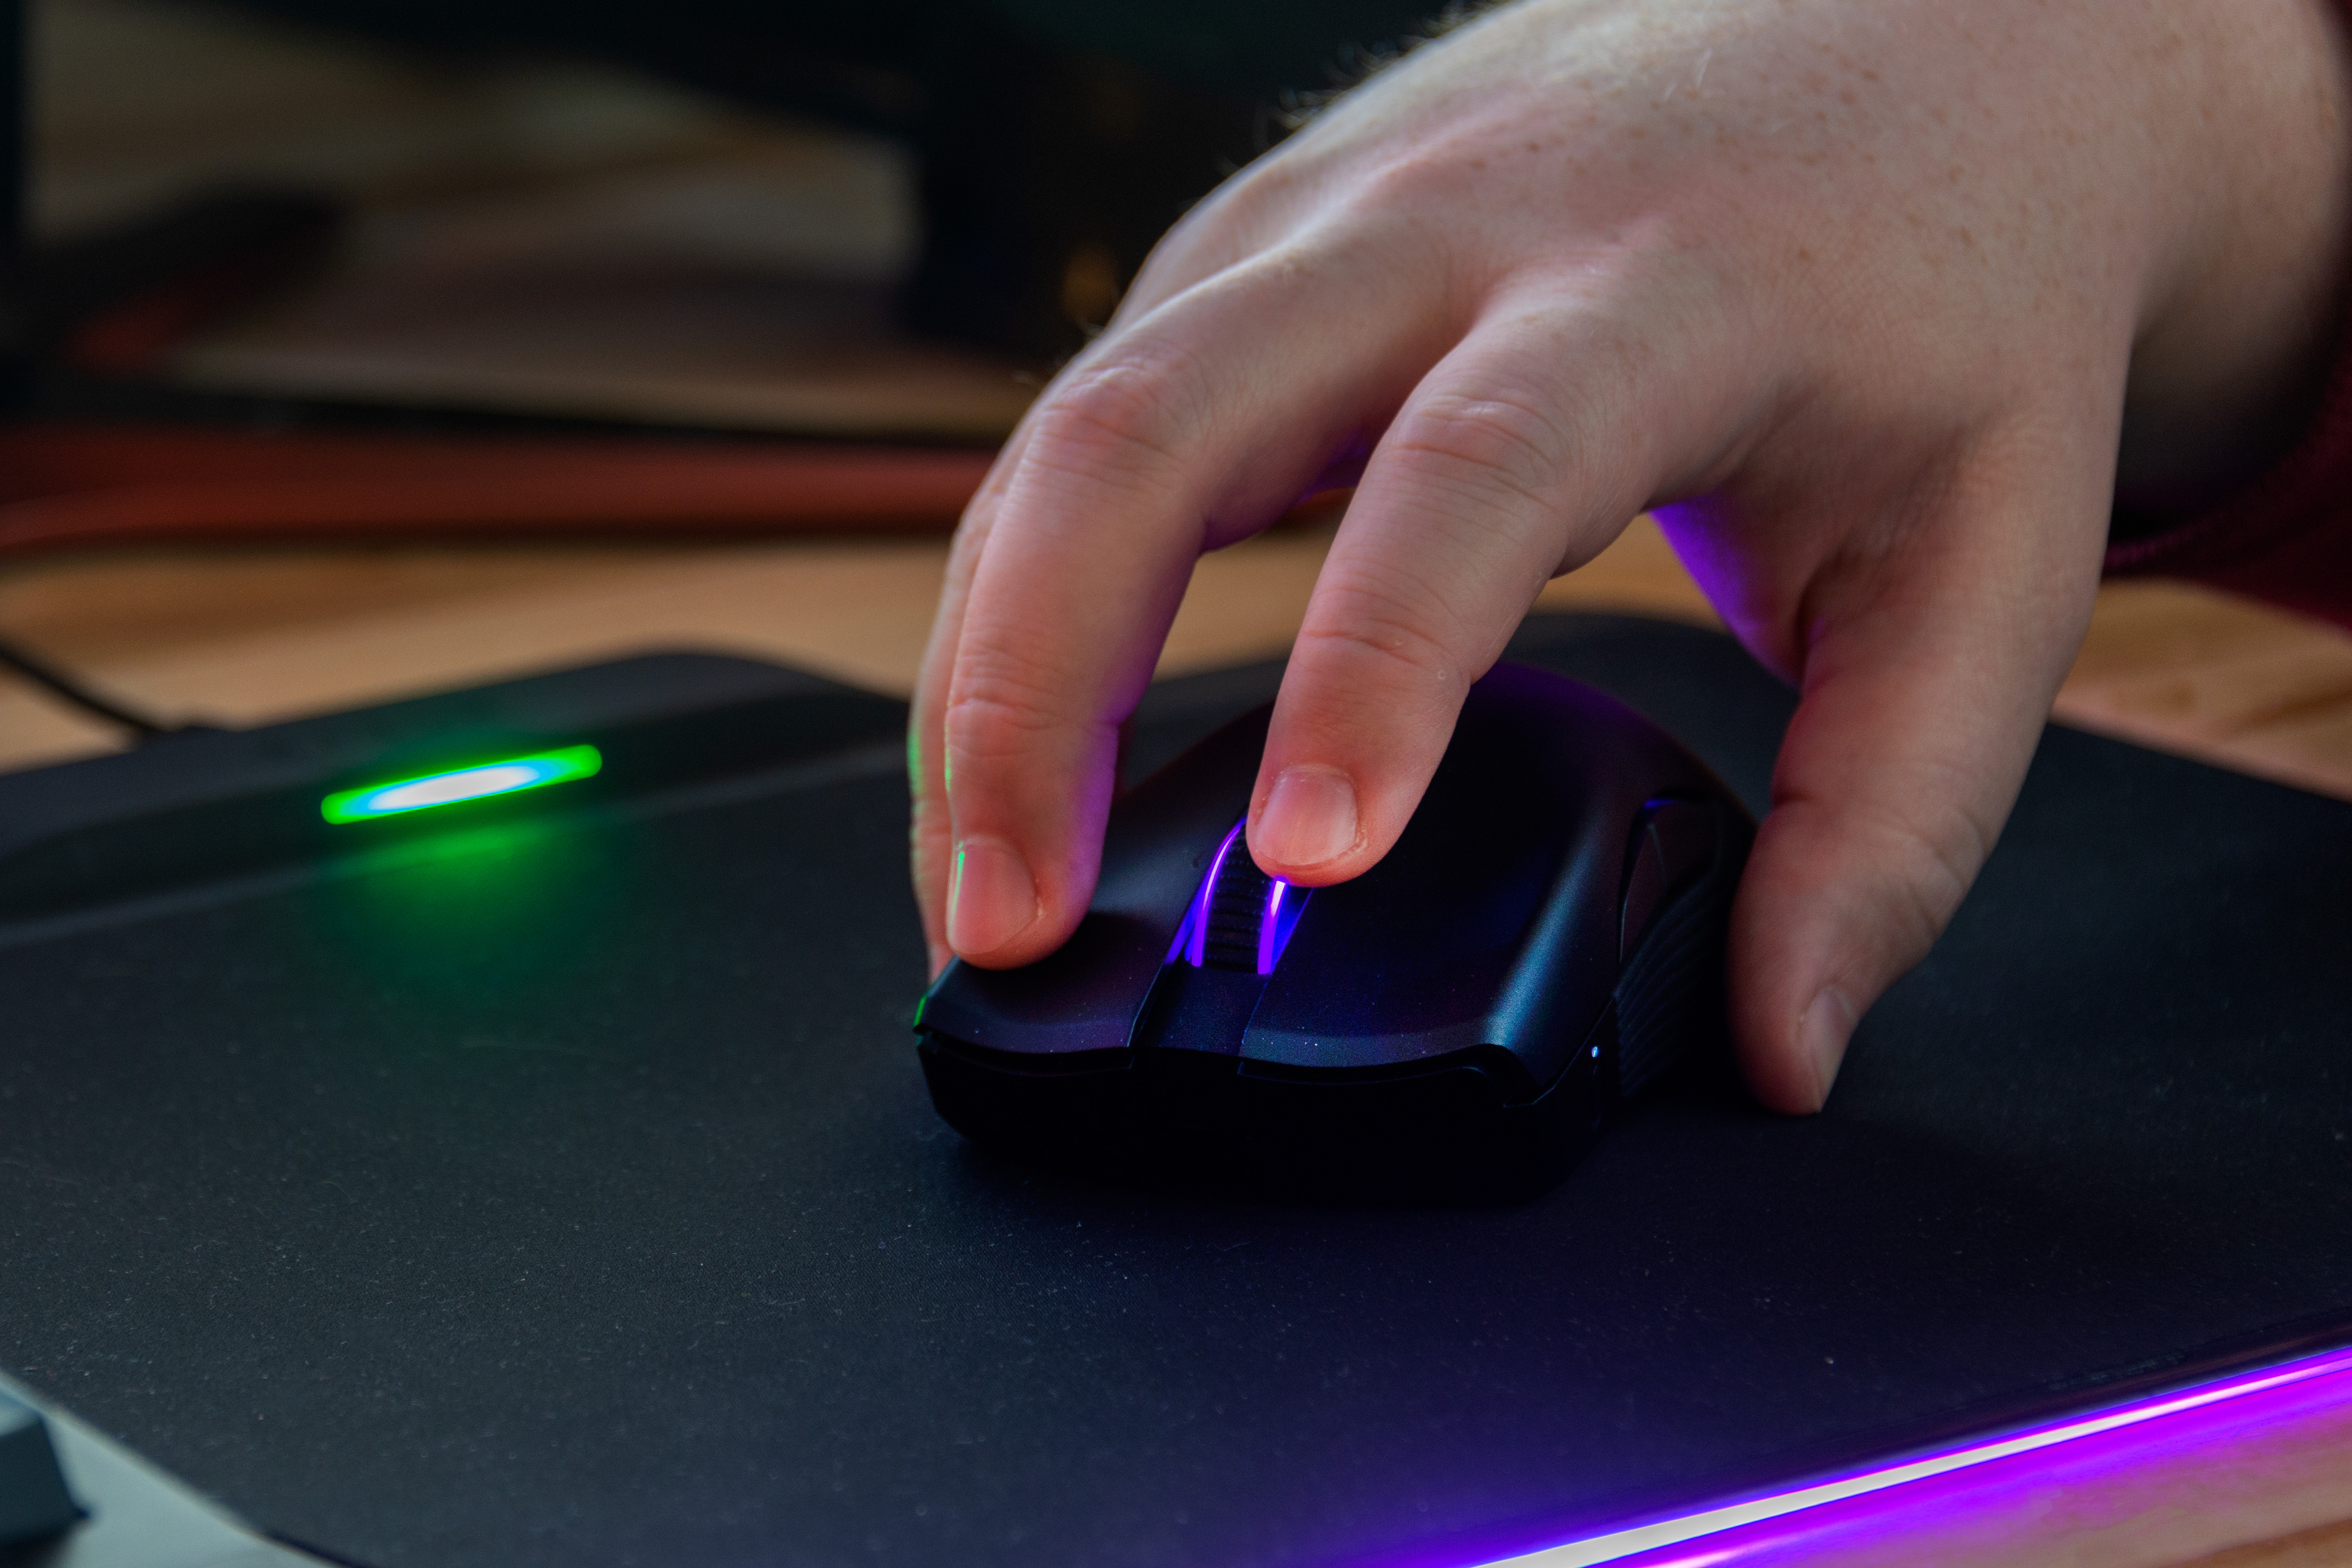 3fb518c96a3 Check out Razer Mamba Elite RZ01-02560100-R3M1 Gaming Mouse reviews,  ratings, features, specifications and browse more Razer products online at  best prices ...